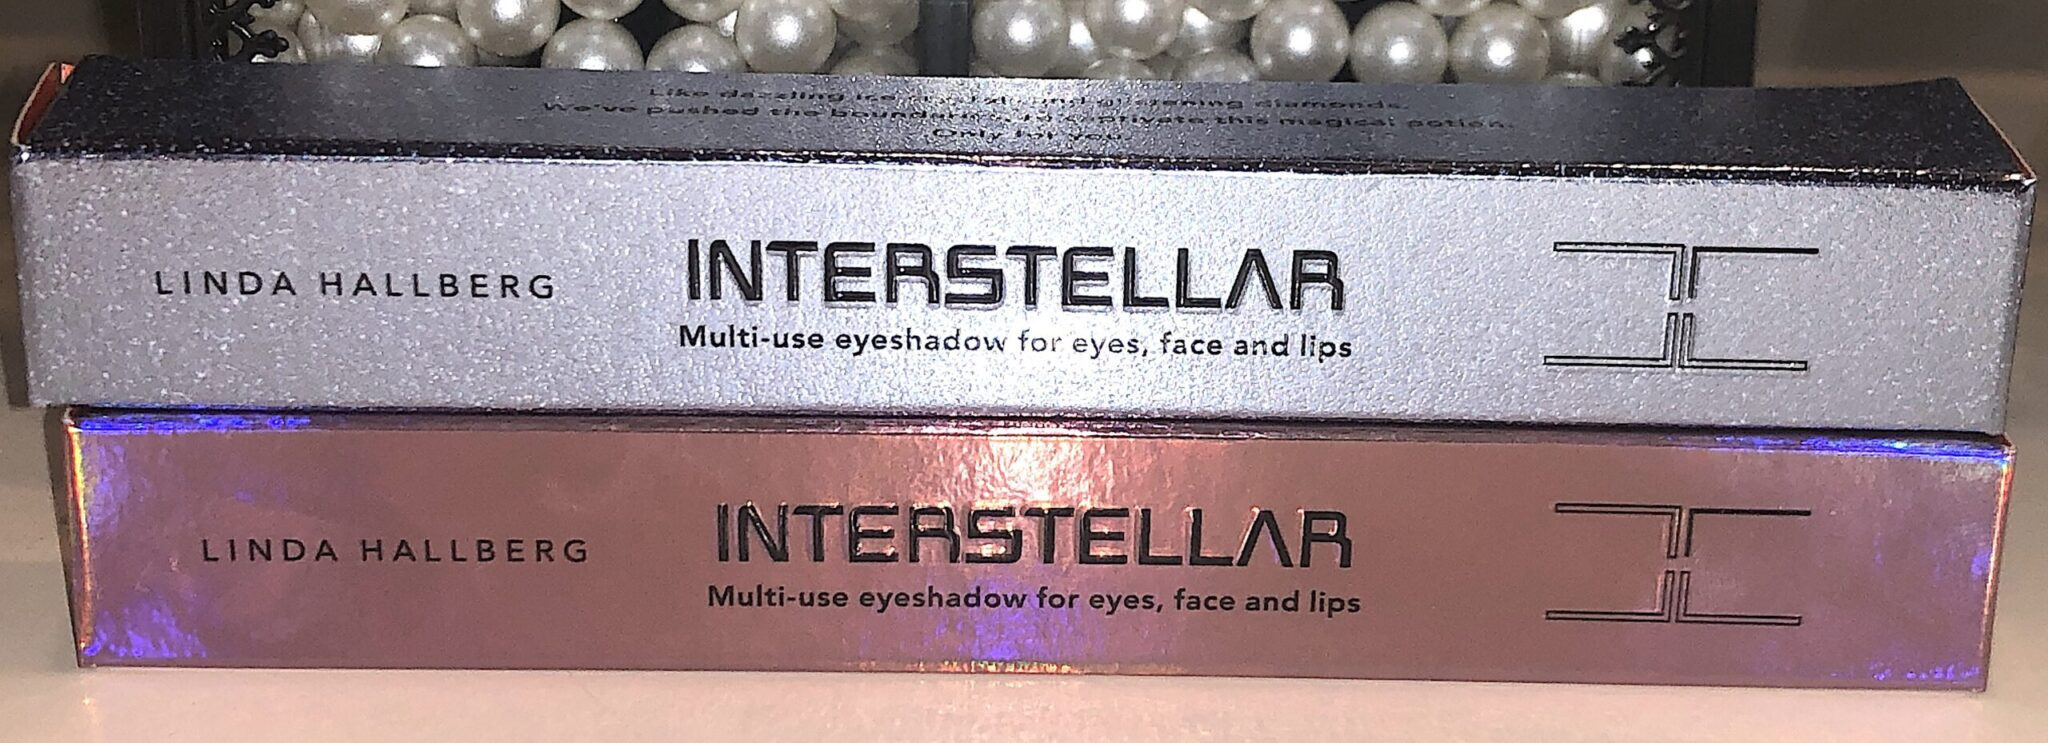 INTERSTELLAR LIQUID EYESHADOW PACKAGING